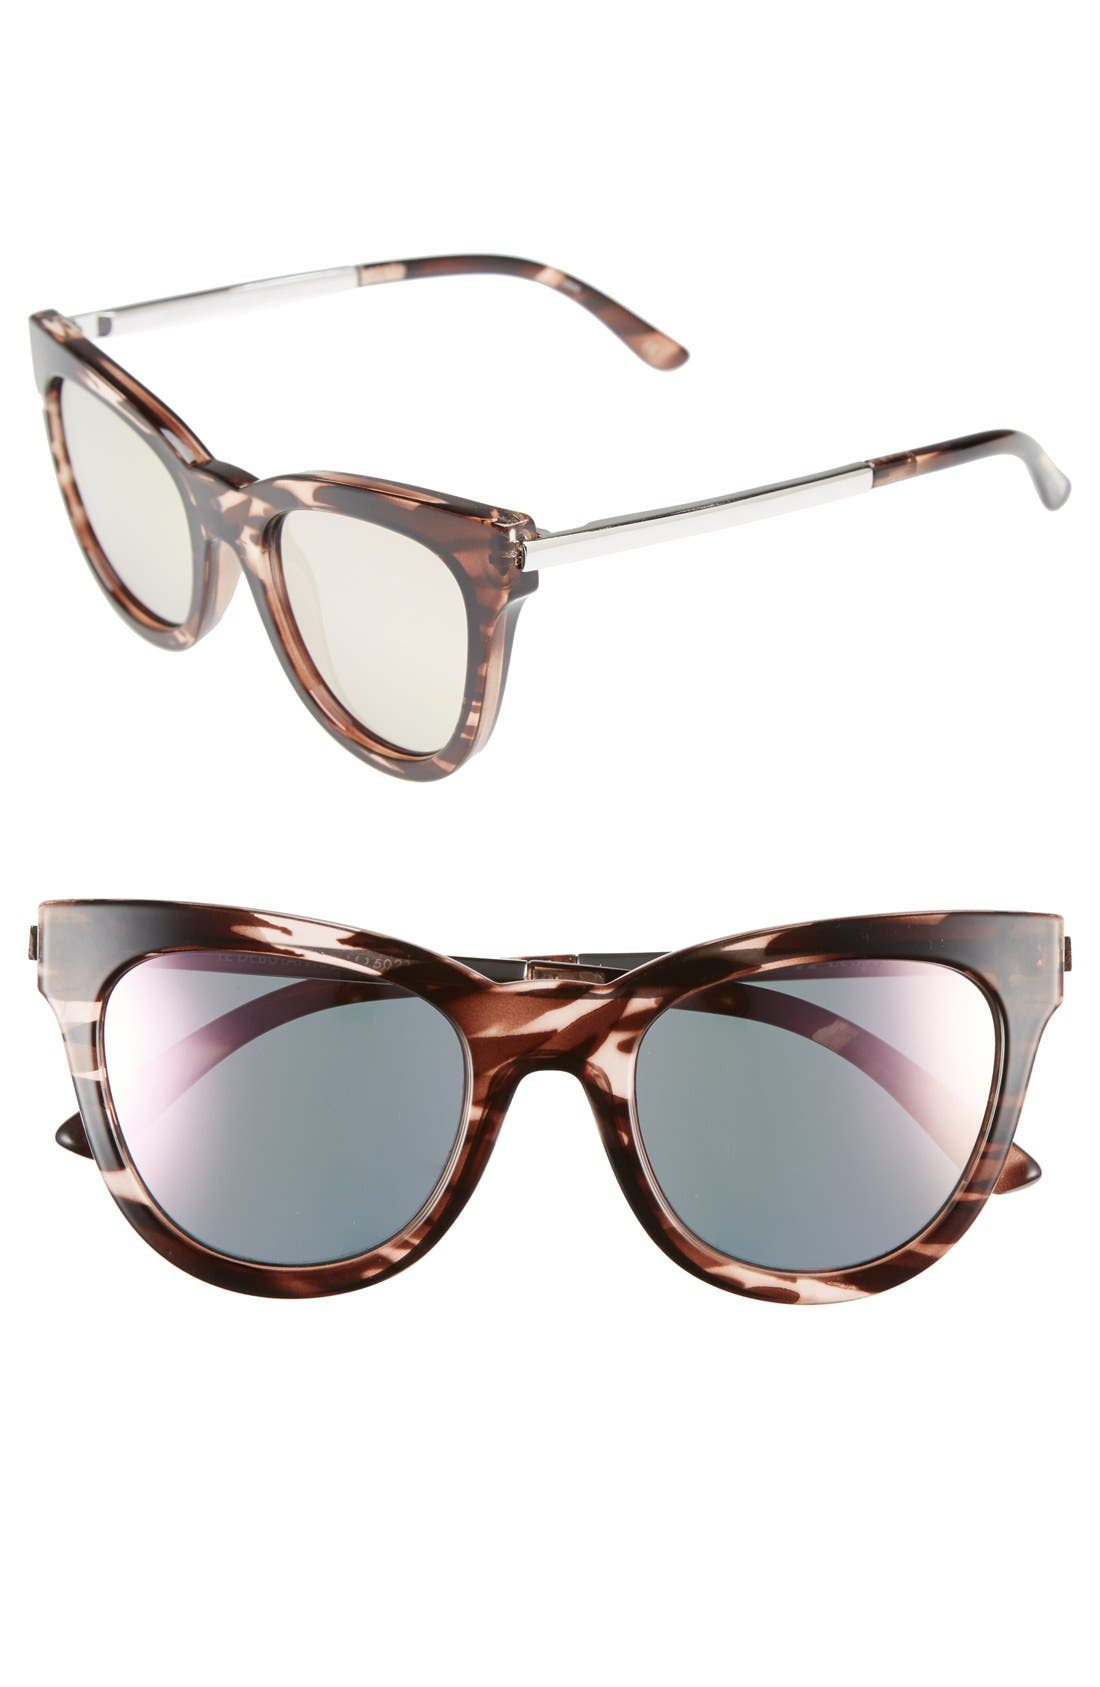 Alternate Image 1 Selected - Le Specs 'Le Debutante' 51mm Cat Eye Sunglasses